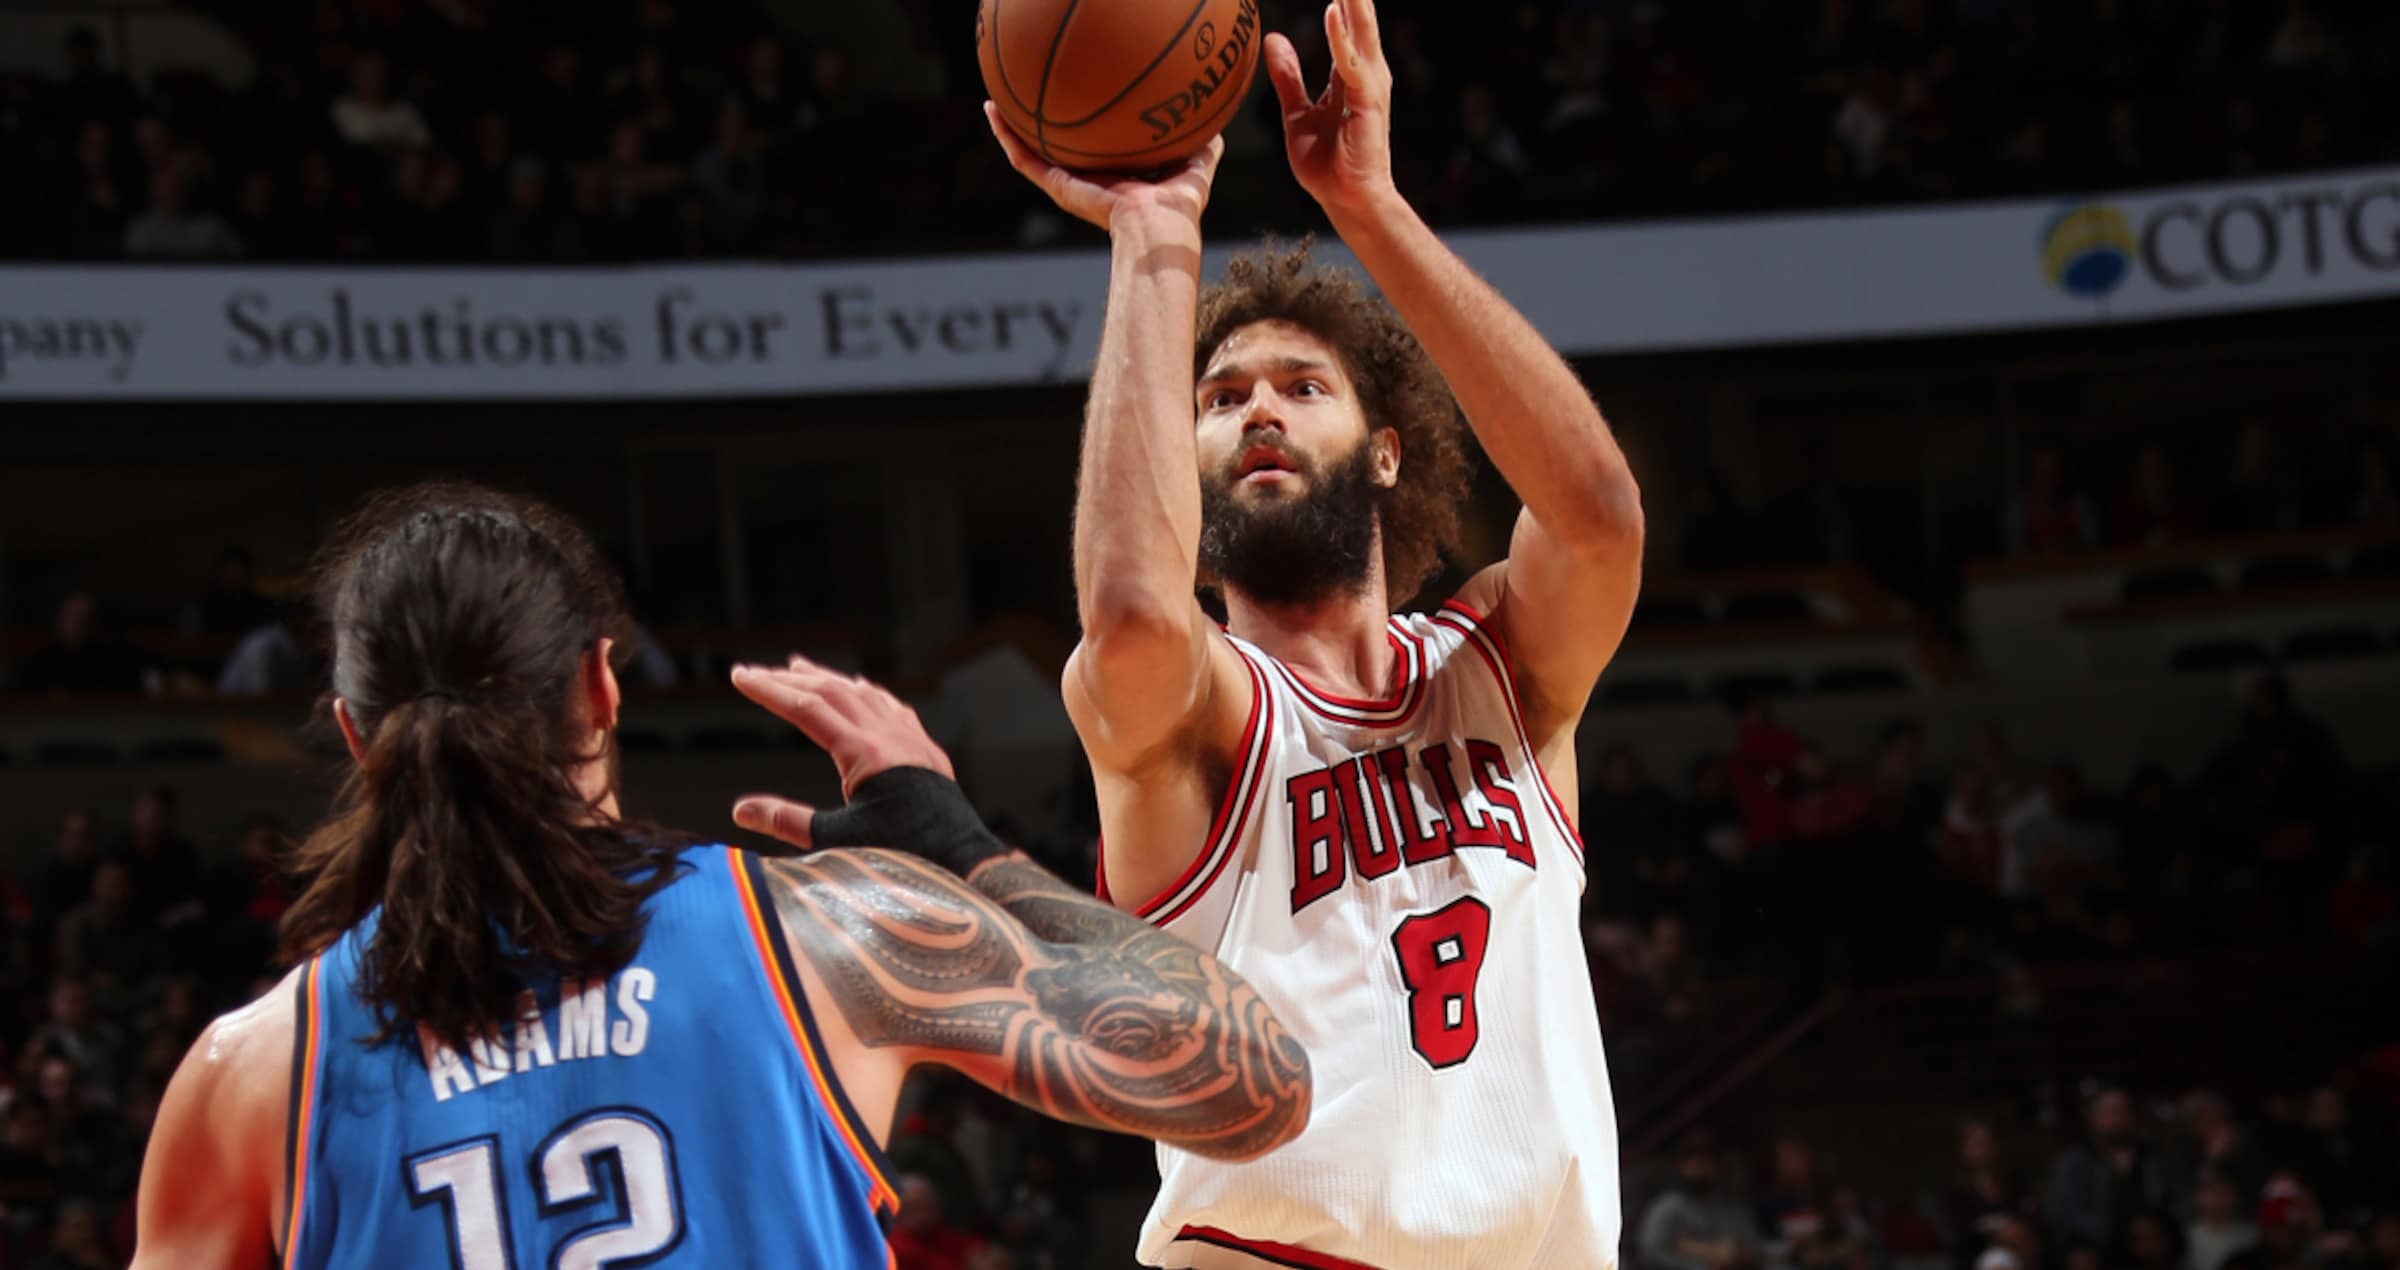 Robin Lopez #8 of the Chicago Bulls shoots the ball against the Oklahoma City Thunder